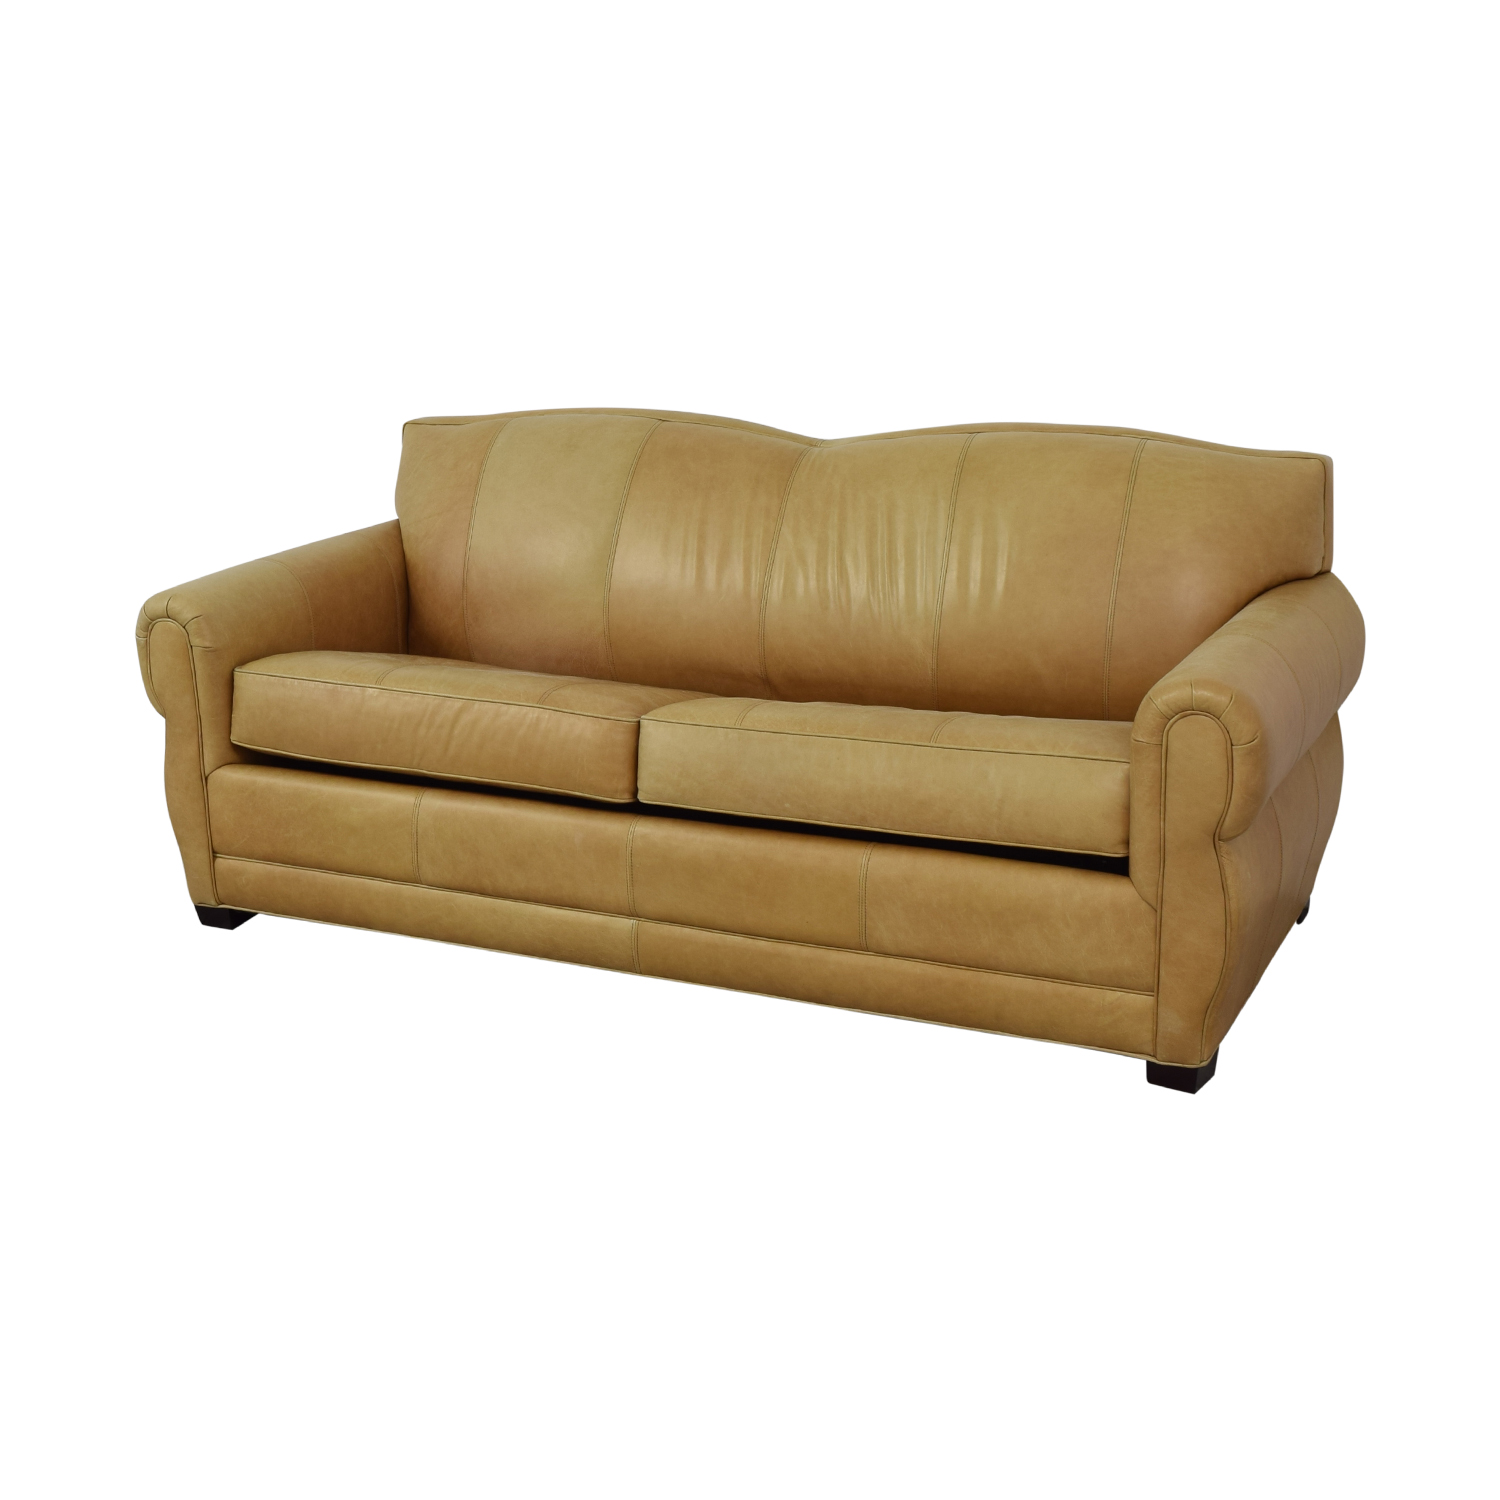 Thomasville Thomasville Queen Sleeper Sofa for sale